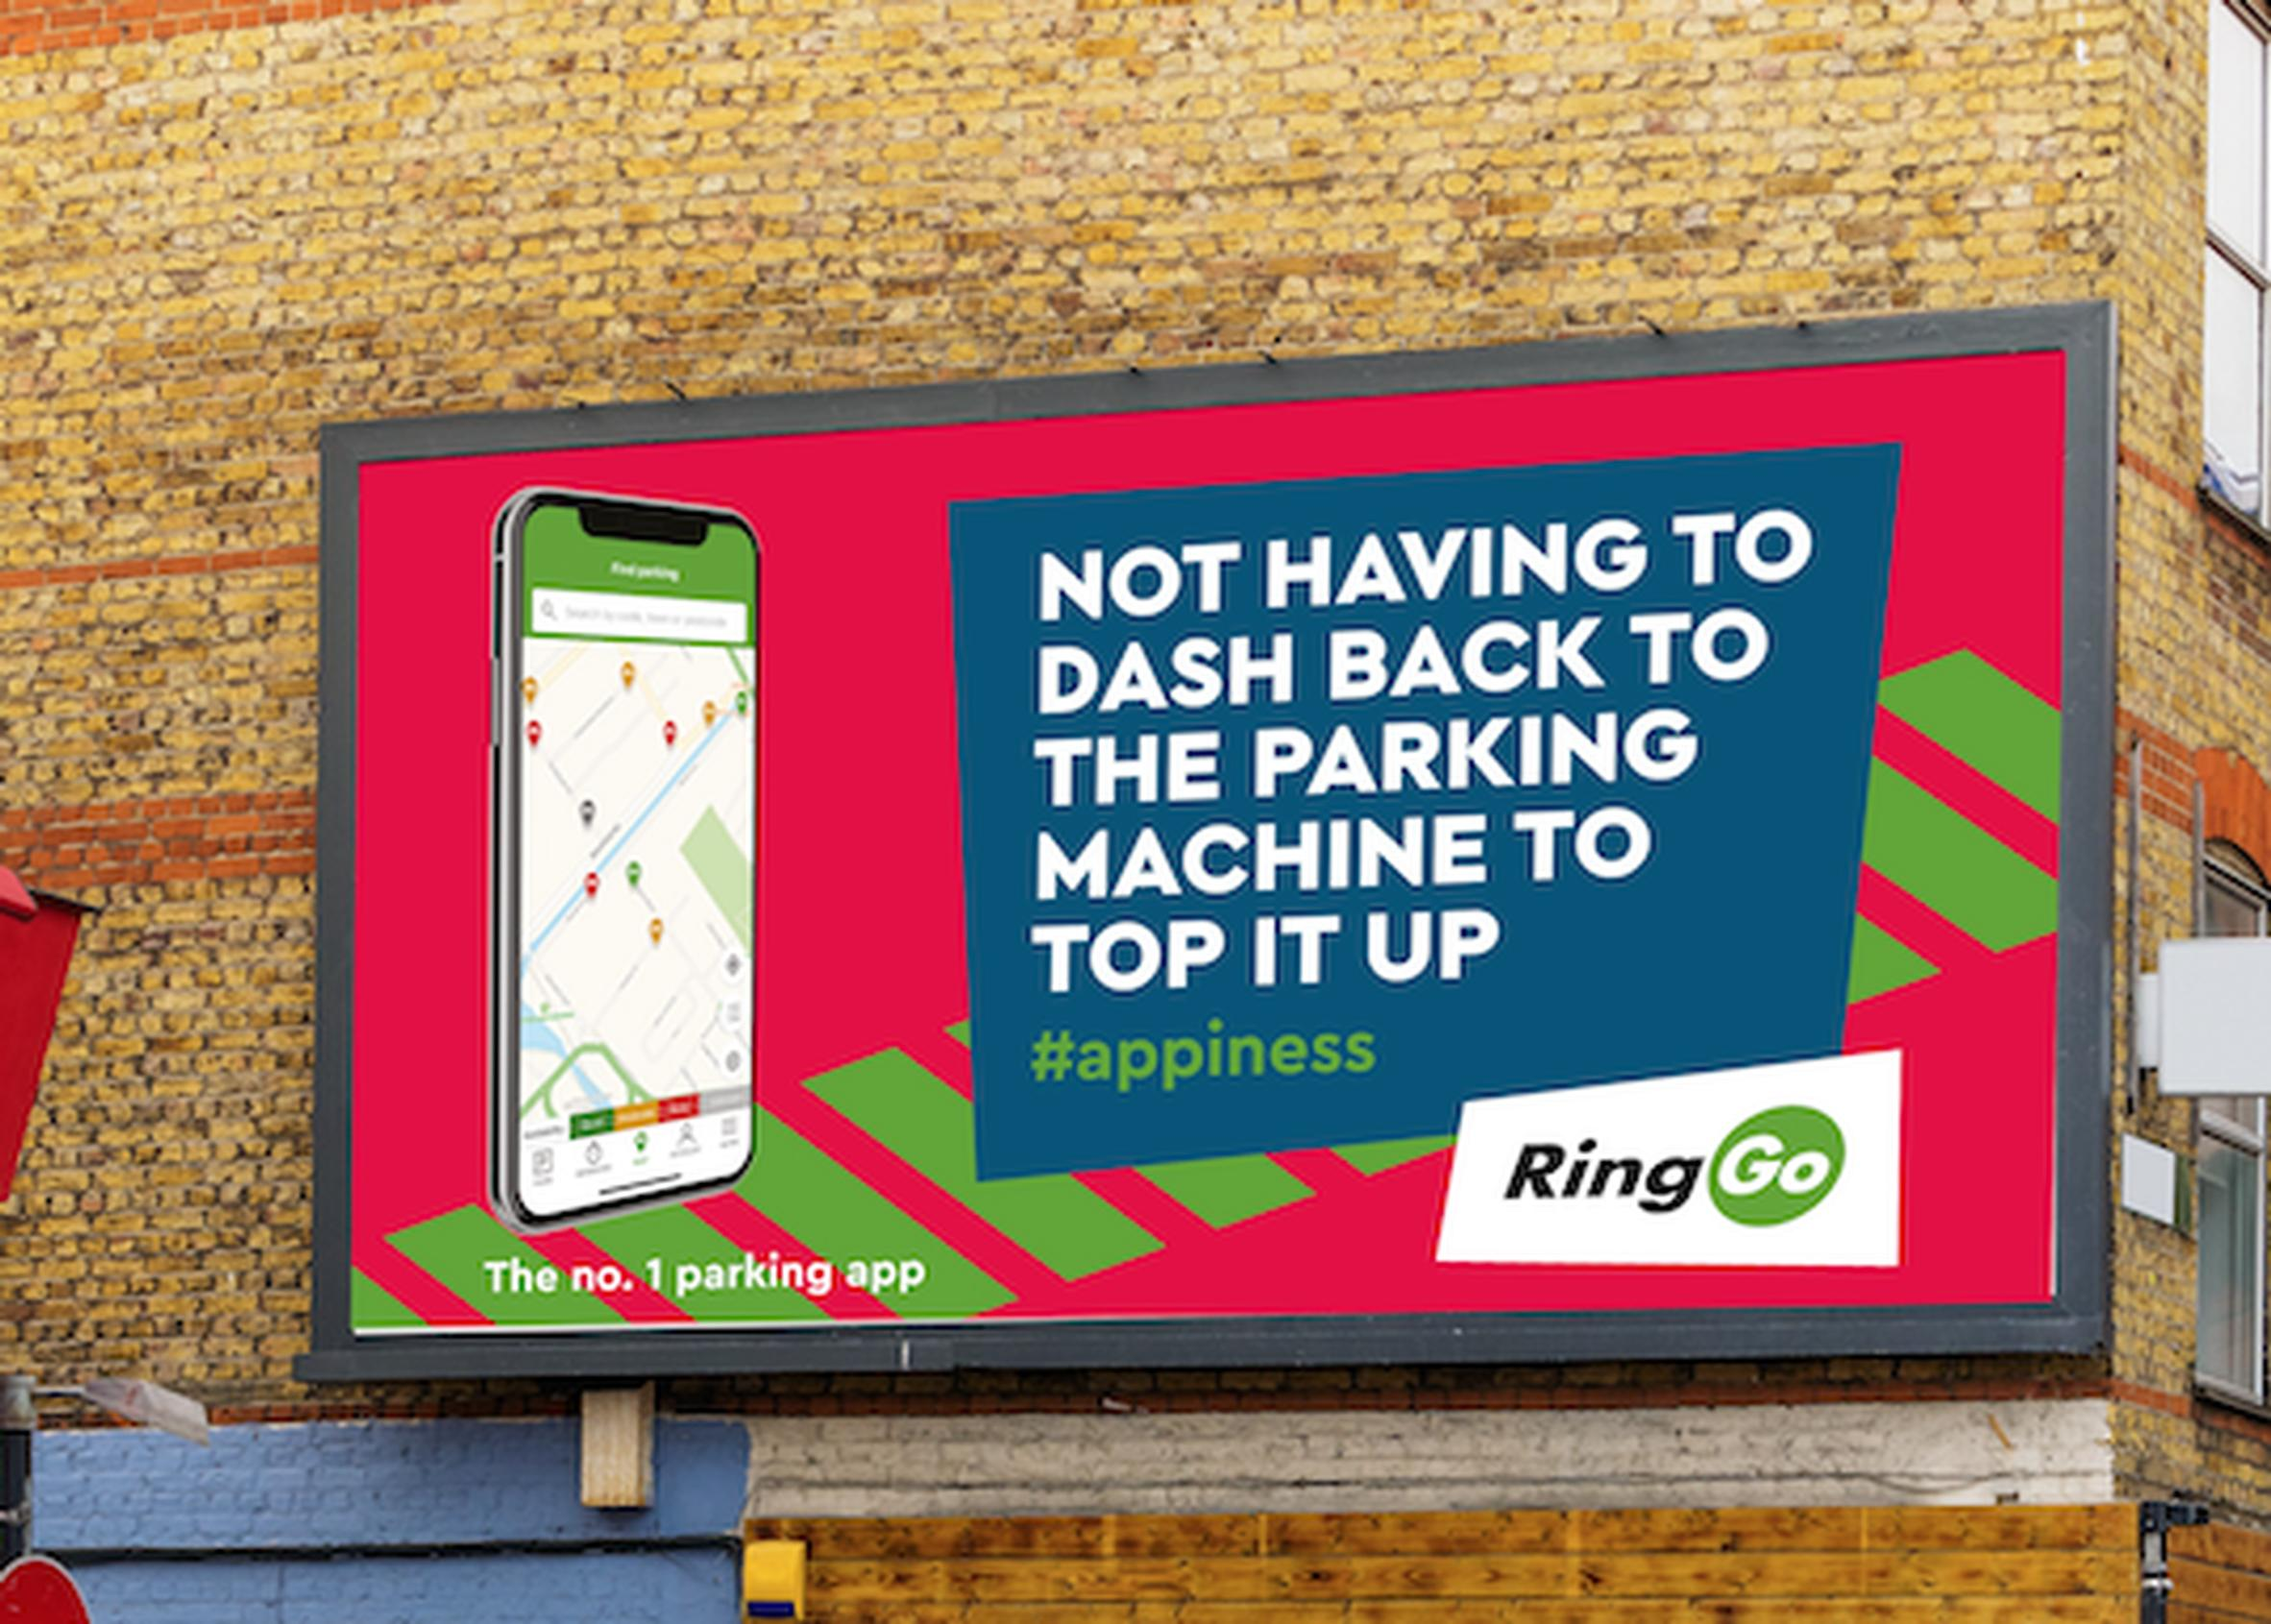 RingGo is the first parking solution within NOW group to feature the new #appiness creative